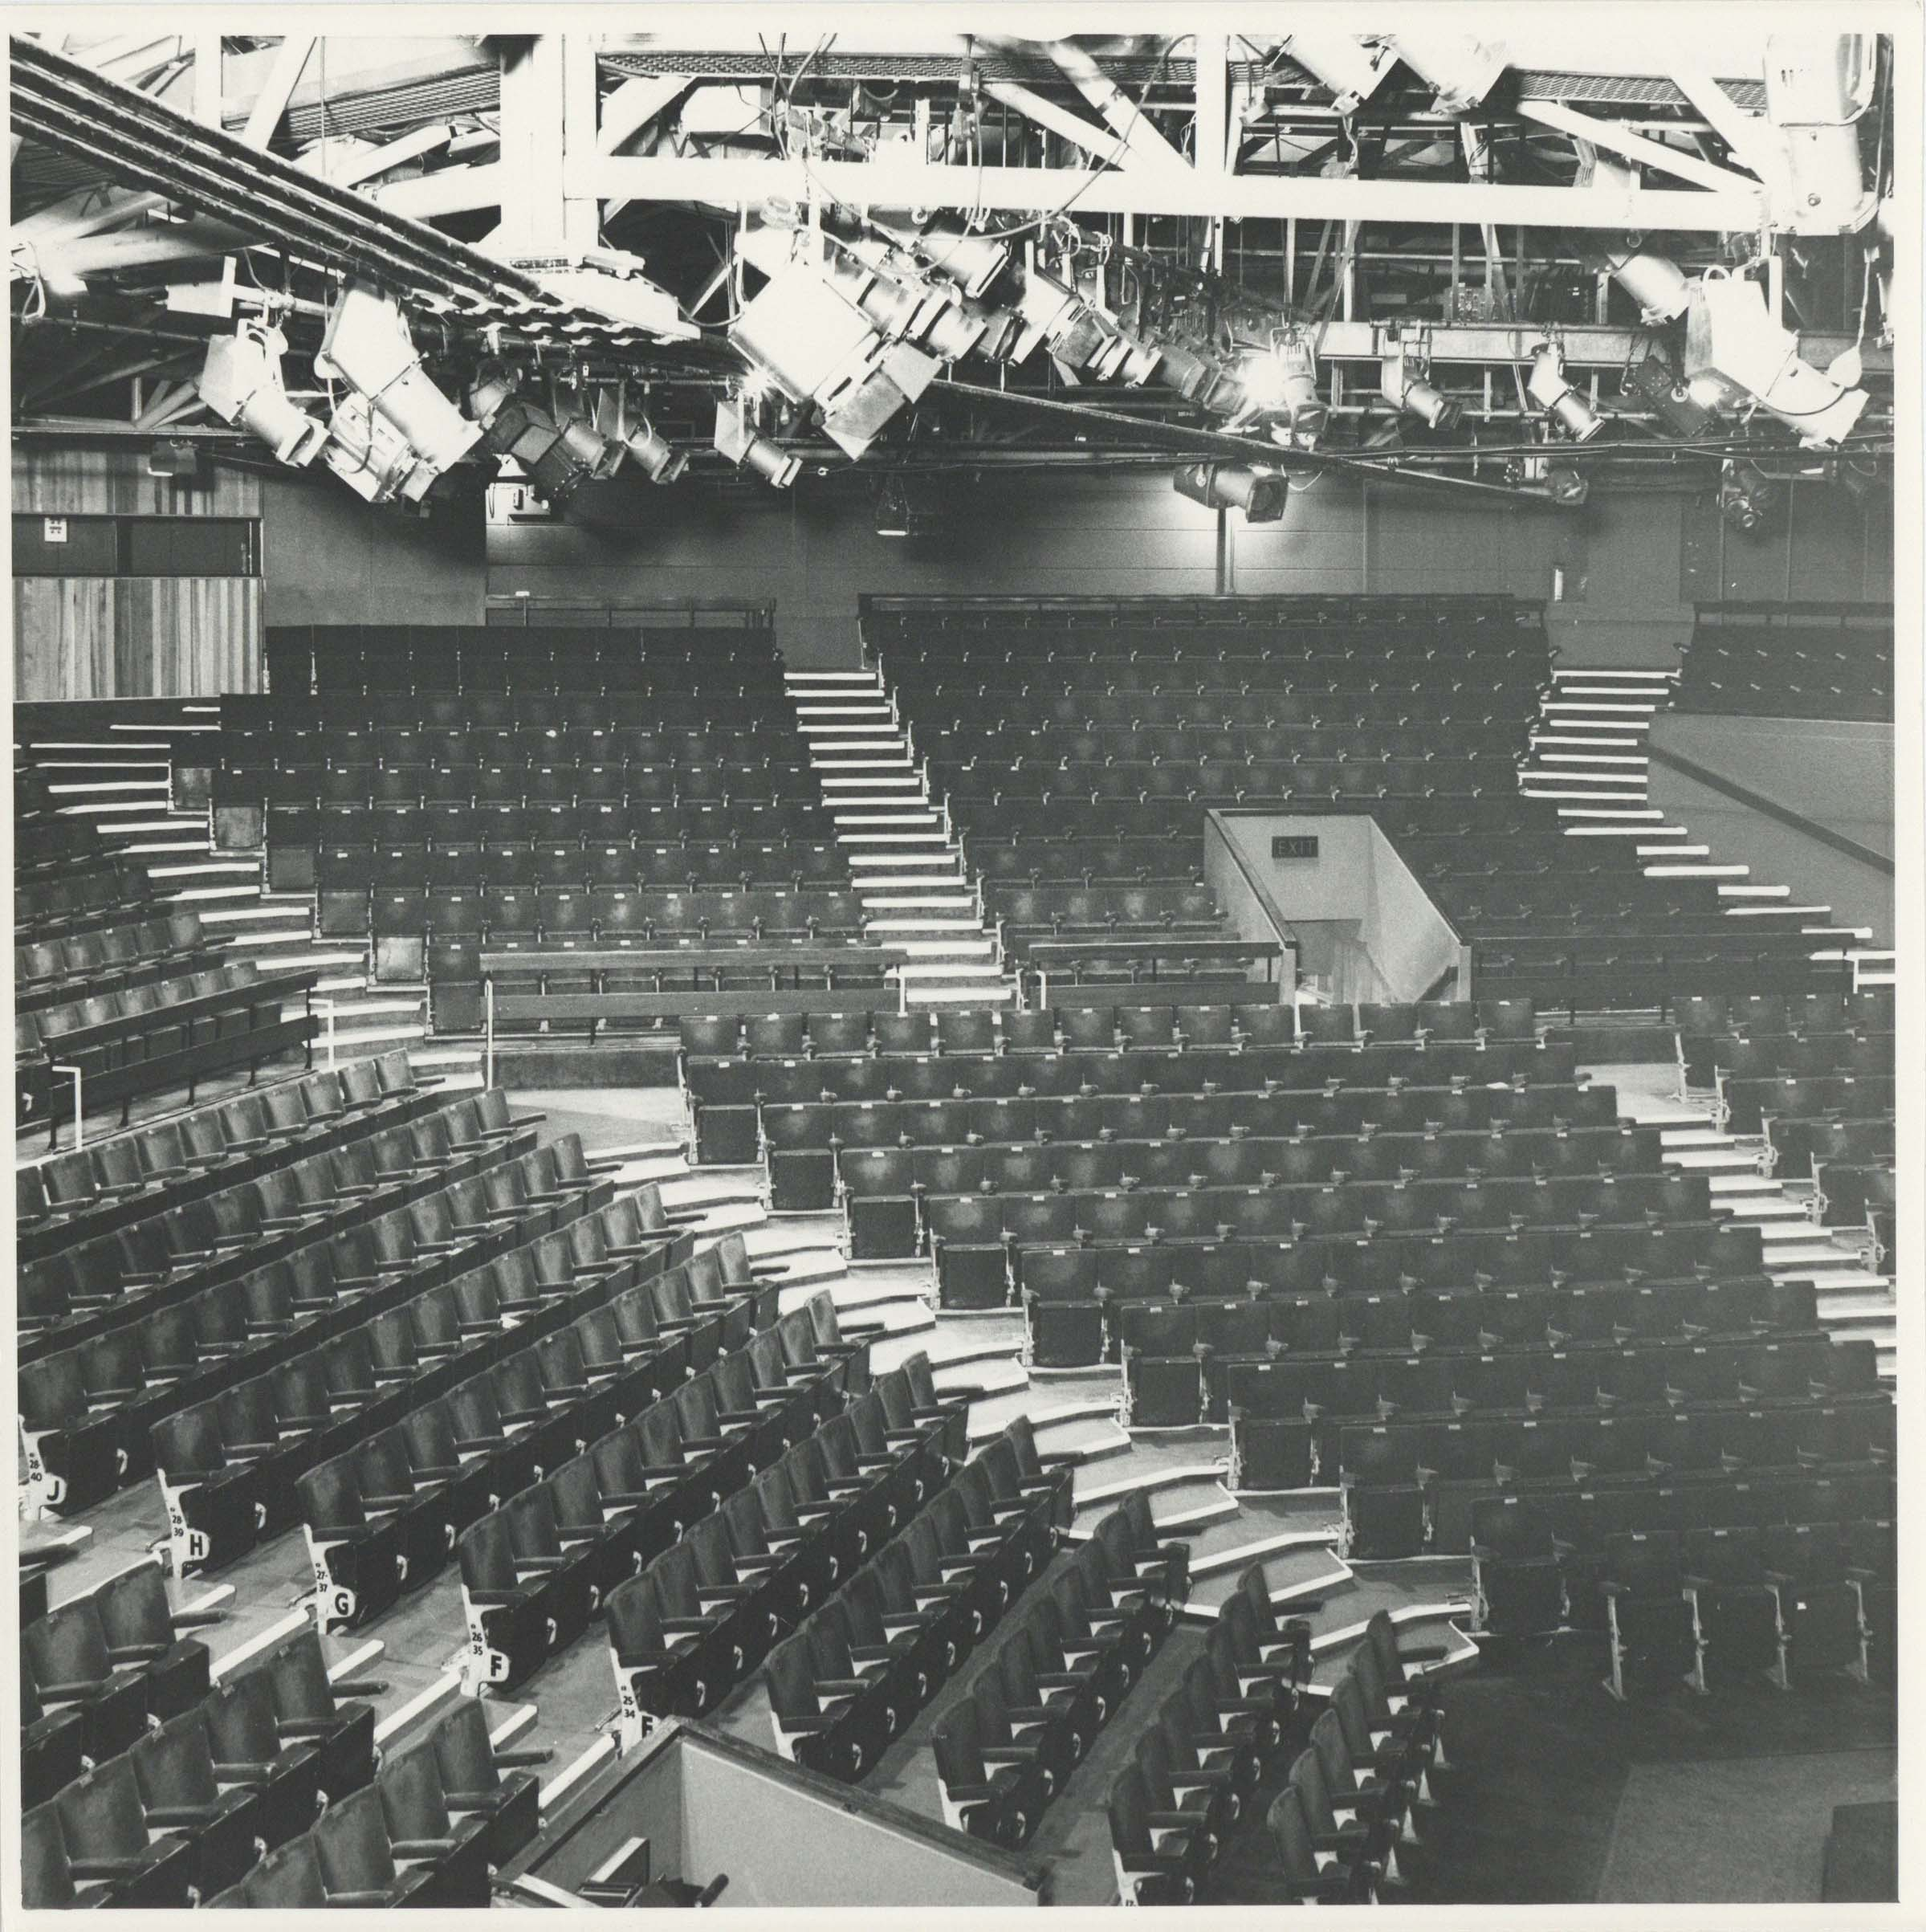 Photograph Interior Auditorium - Photographer unknown - Date unknown - Box 71 CFT WSRO - H20xW20cm